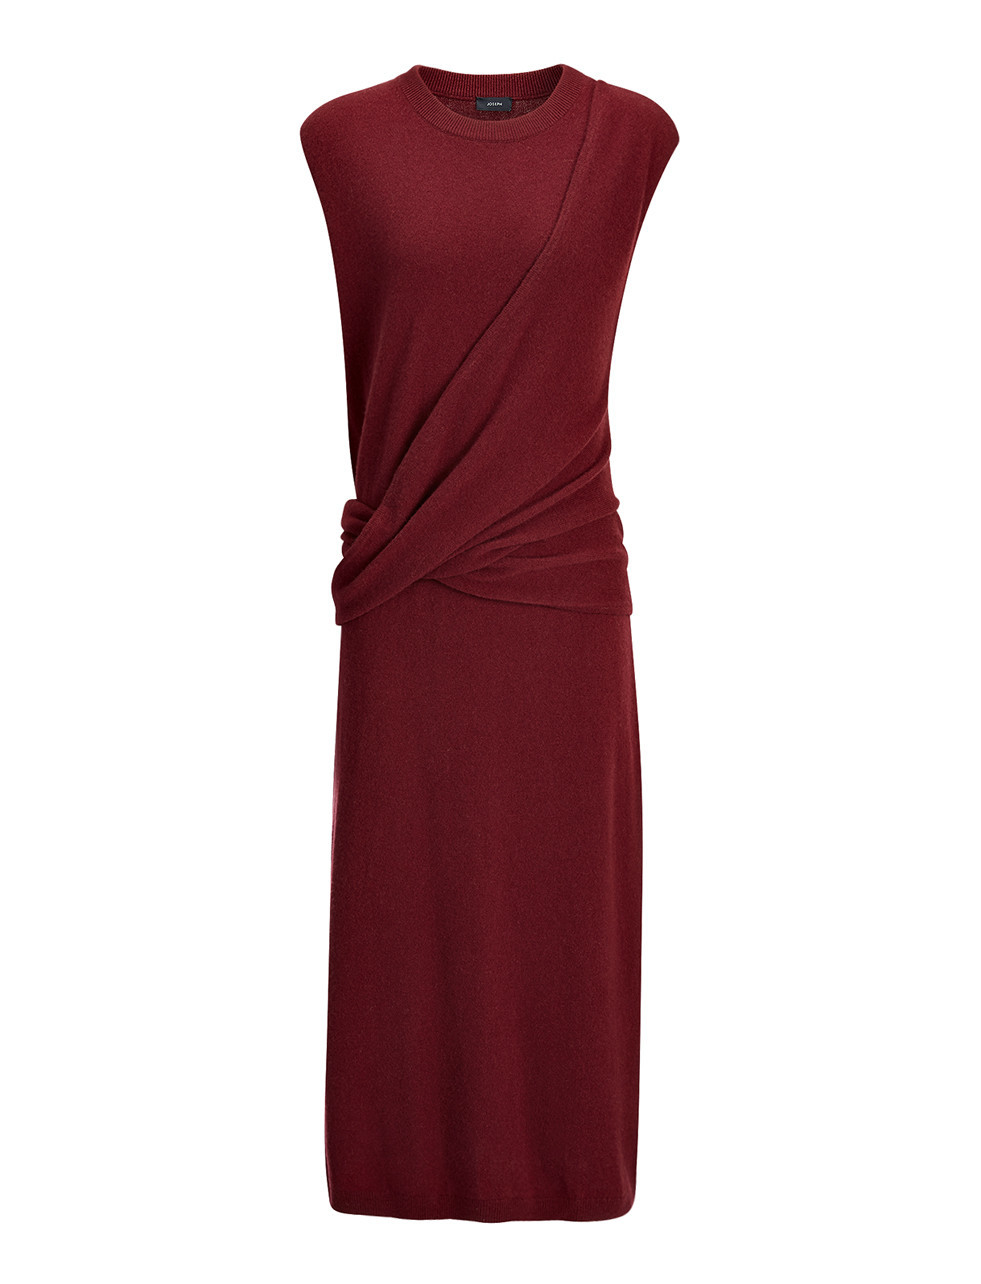 Soft Wool Feli Dress In Oxblood - style: shift; length: calf length; pattern: plain; sleeve style: sleeveless; neckline: high neck; predominant colour: burgundy; occasions: evening; fit: body skimming; fibres: wool - 100%; sleeve length: sleeveless; texture group: jersey - clingy; pattern type: fabric; season: s/s 2016